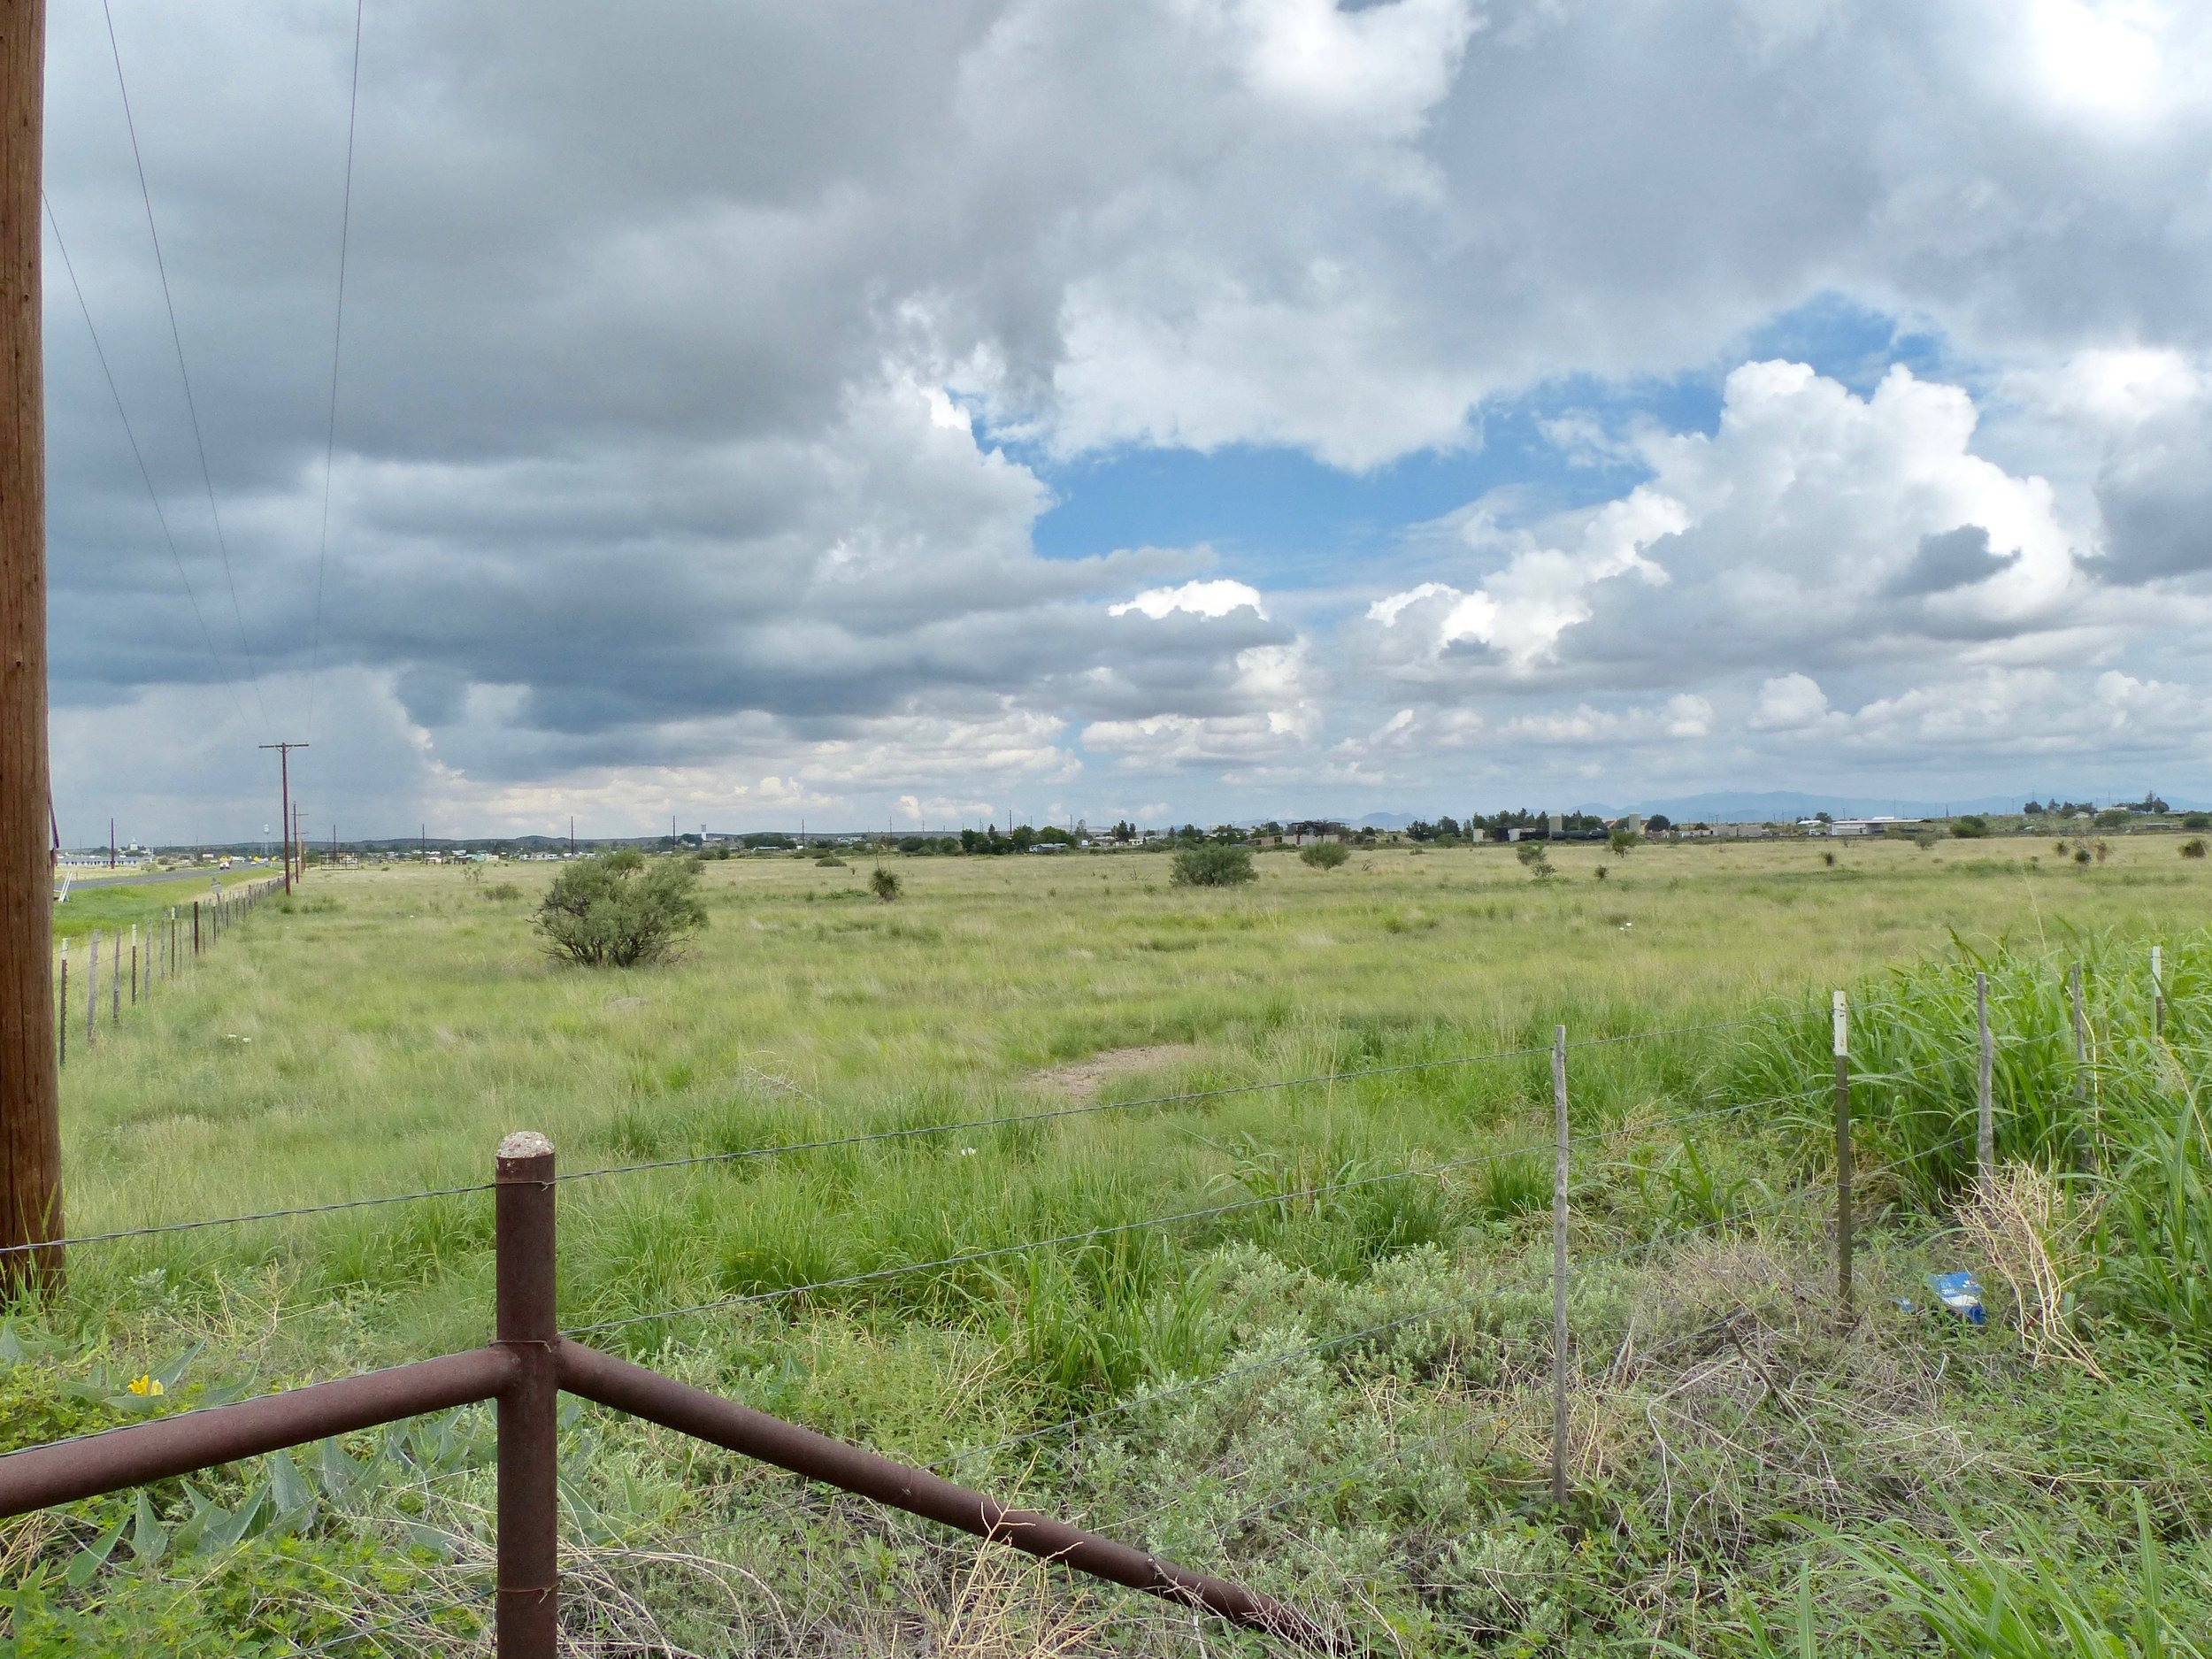 Offered At: $10,000 per acre